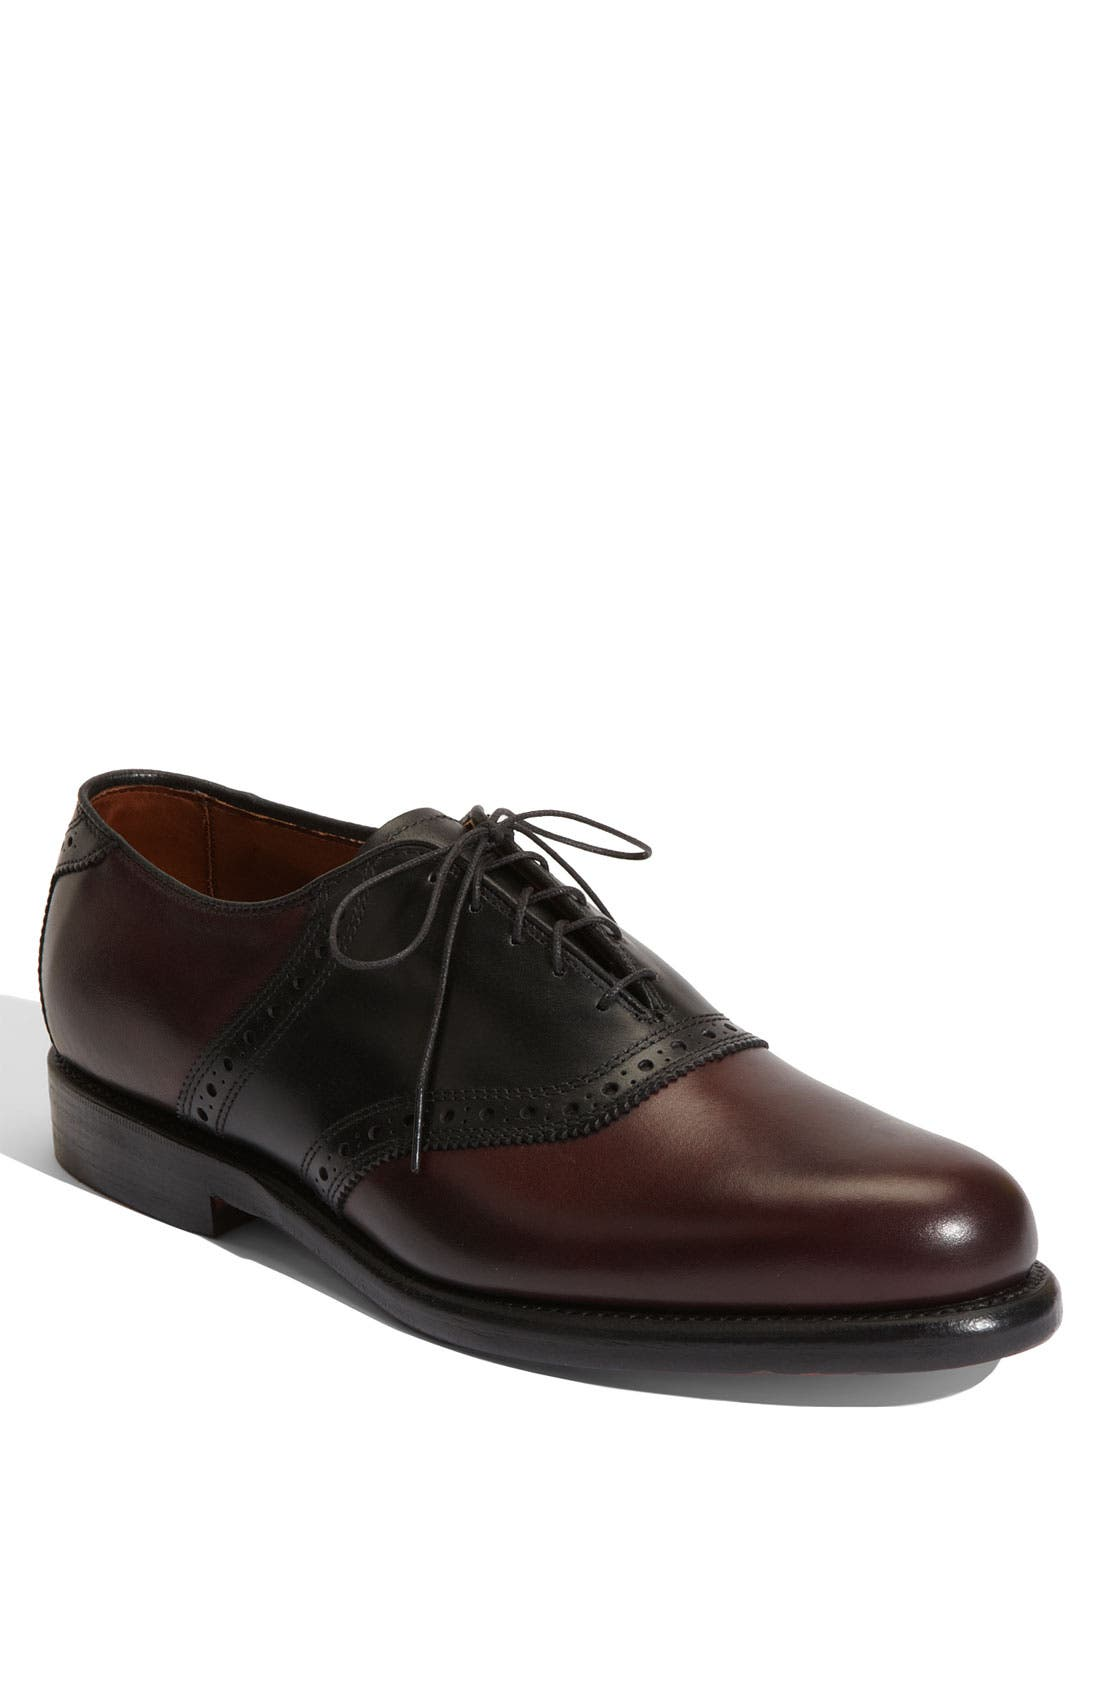 Main Image - Allen Edmonds 'Shelton' Saddle Oxford (Men)